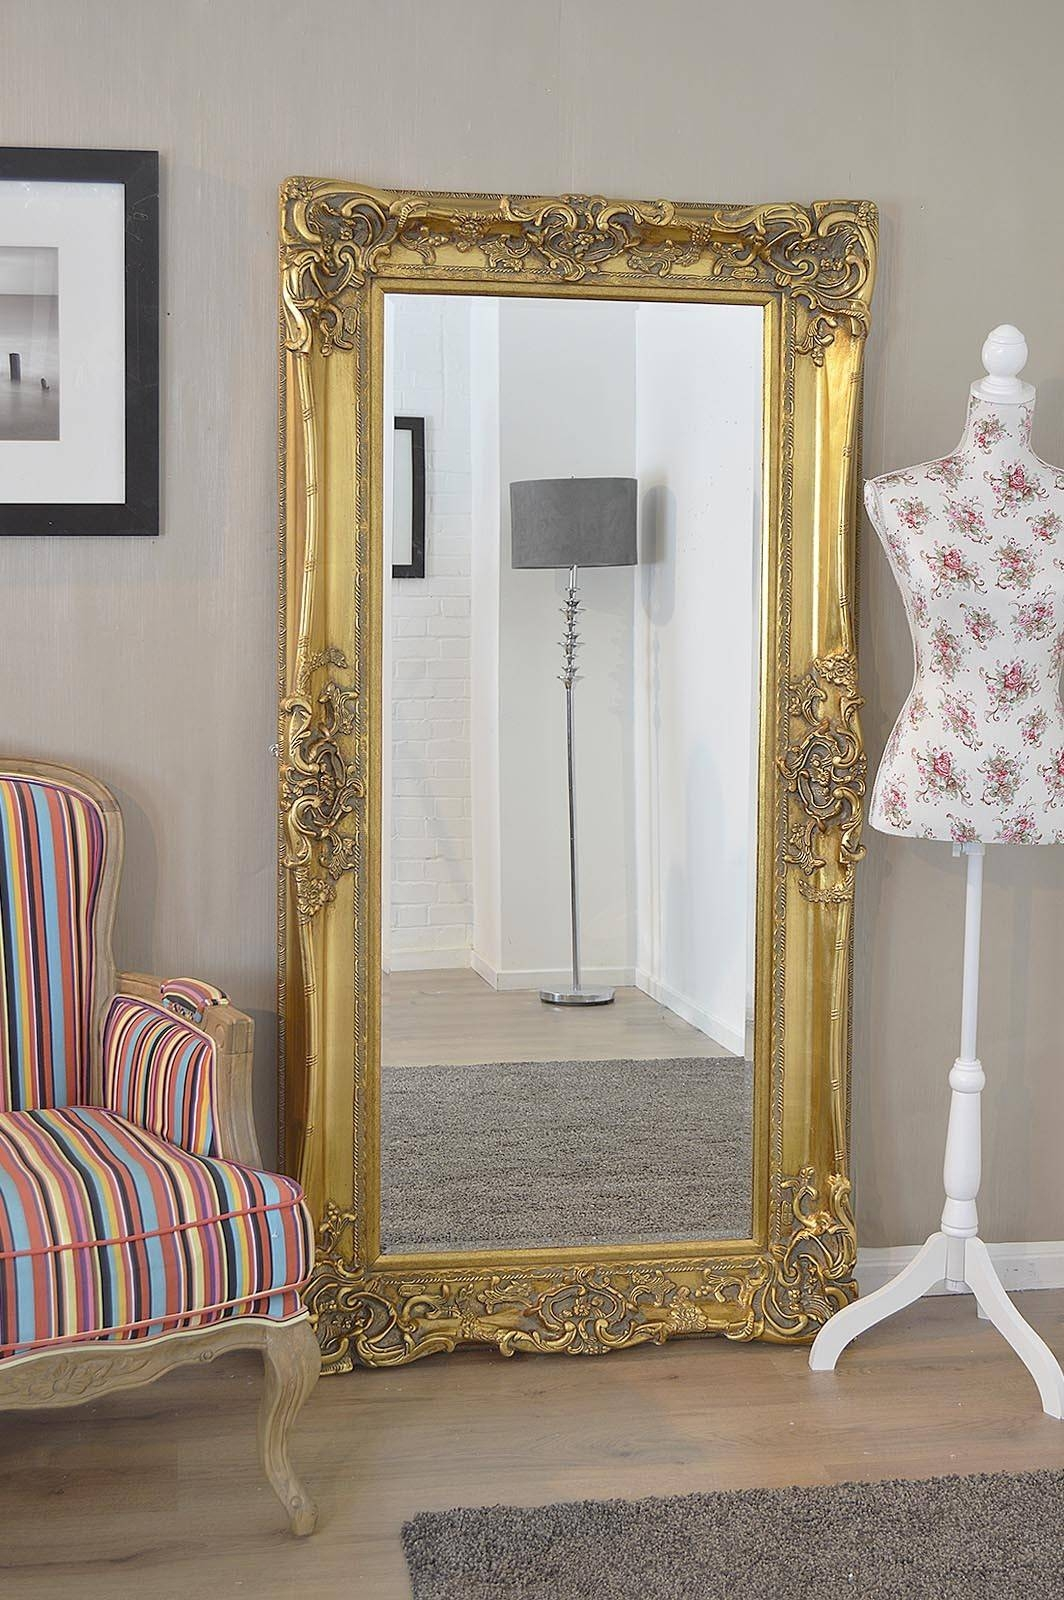 Magnificent Vintage Stand Up Mirror With Frameless Vintage Mirror pertaining to Vintage Stand Up Mirrors (Image 12 of 15)